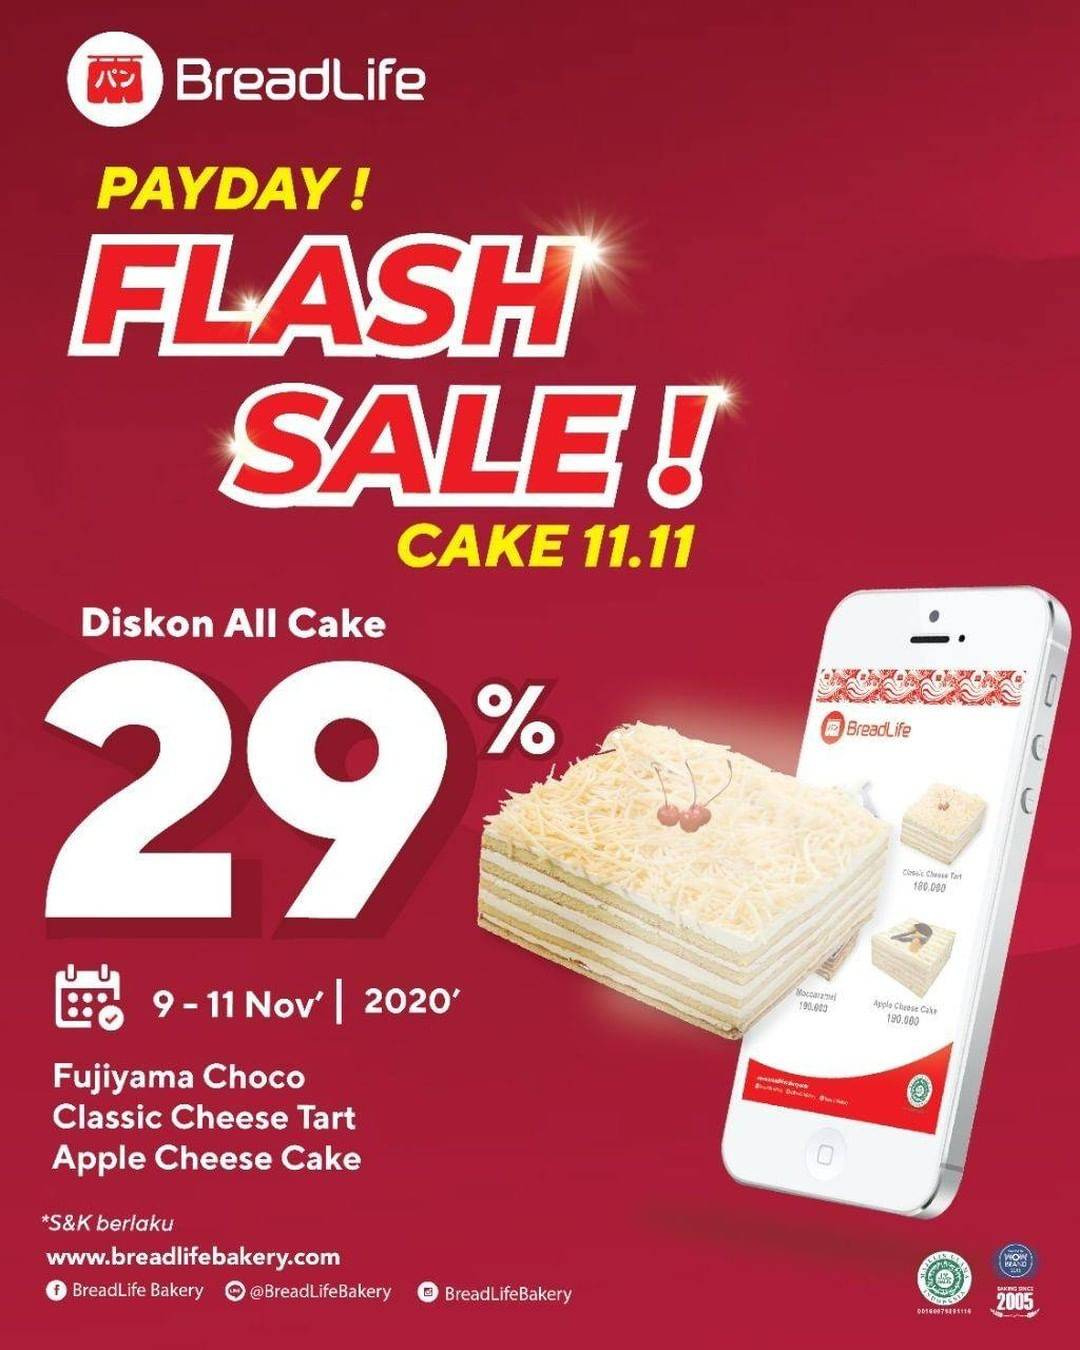 Diskon Breadlife Promo Payday Flash Sale - Discount 29% Off On All Cake